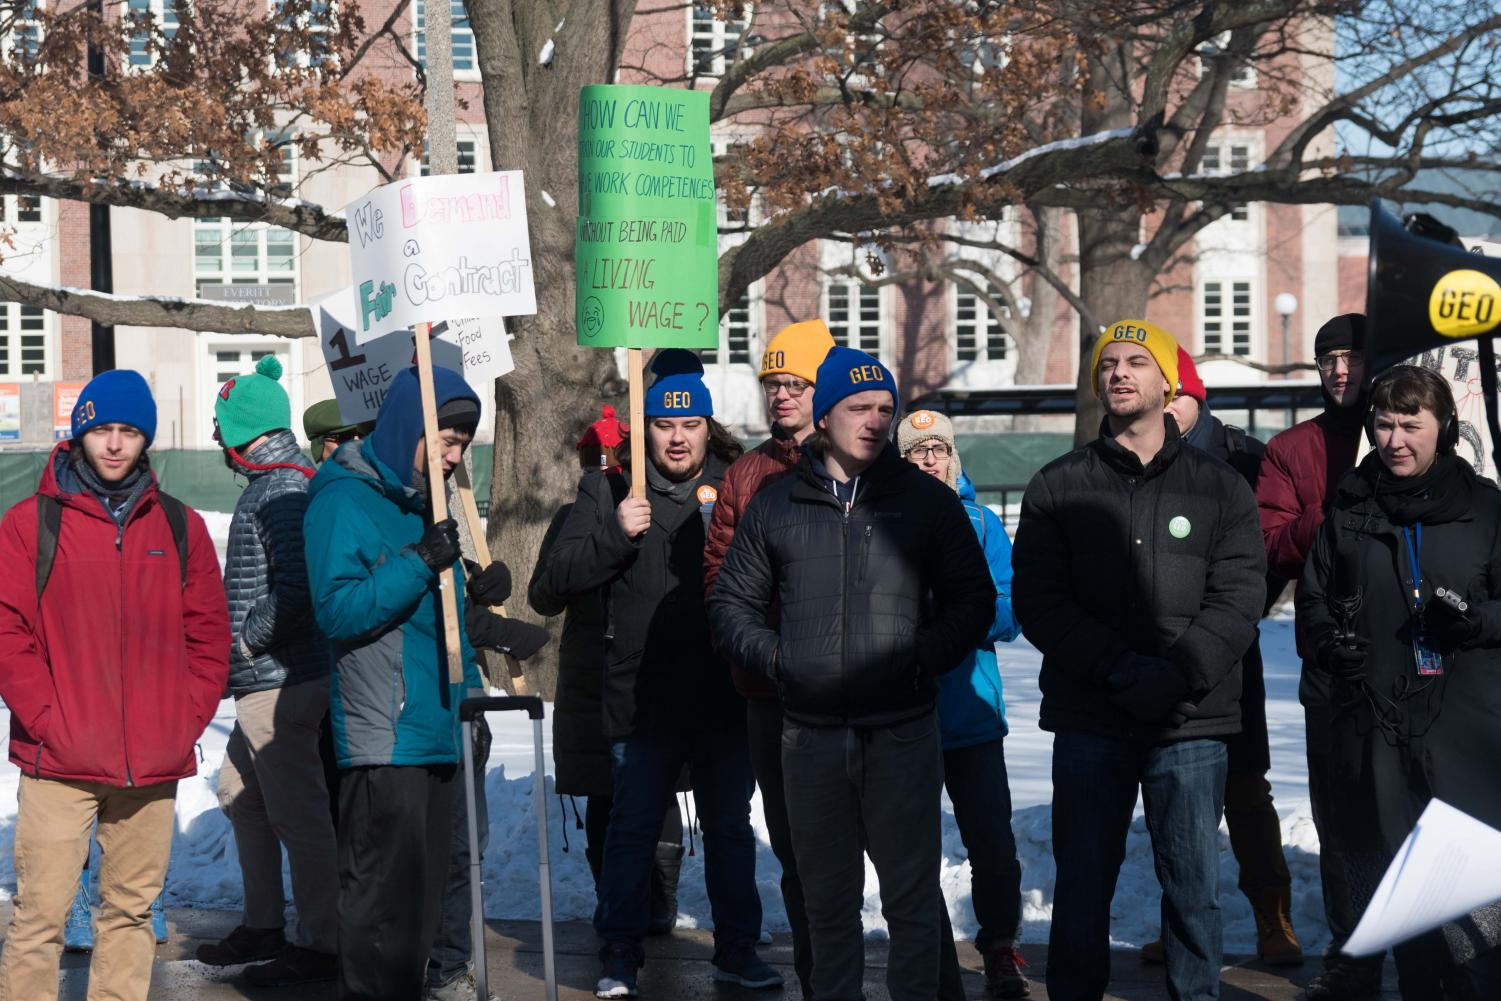 Graduate employees protest for a fair contract at the Alma Mater on Jan. 18. The Graduate Employees' Organization began bargaining with the University on March 30. Graduate employees are now over 160 days without a contract.